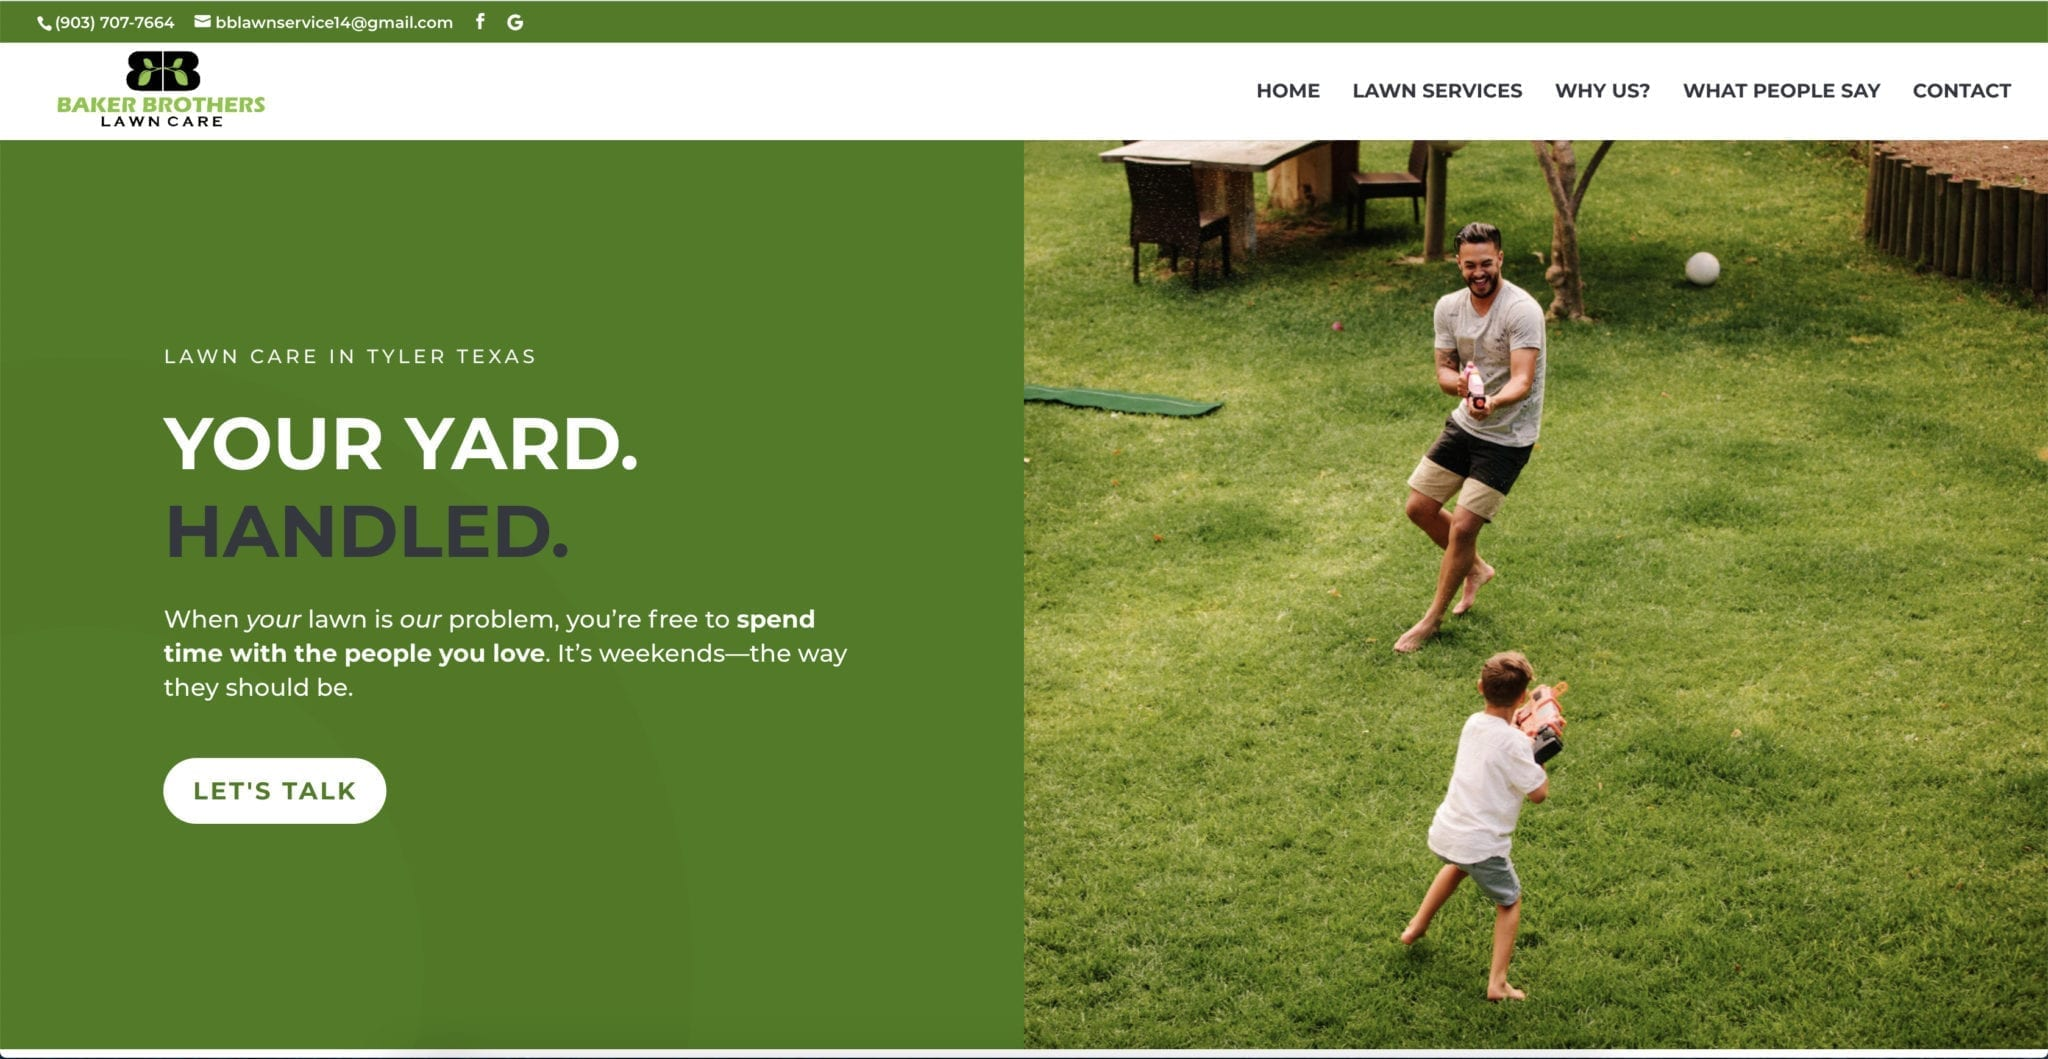 Baker Brothers Lawn Care Website